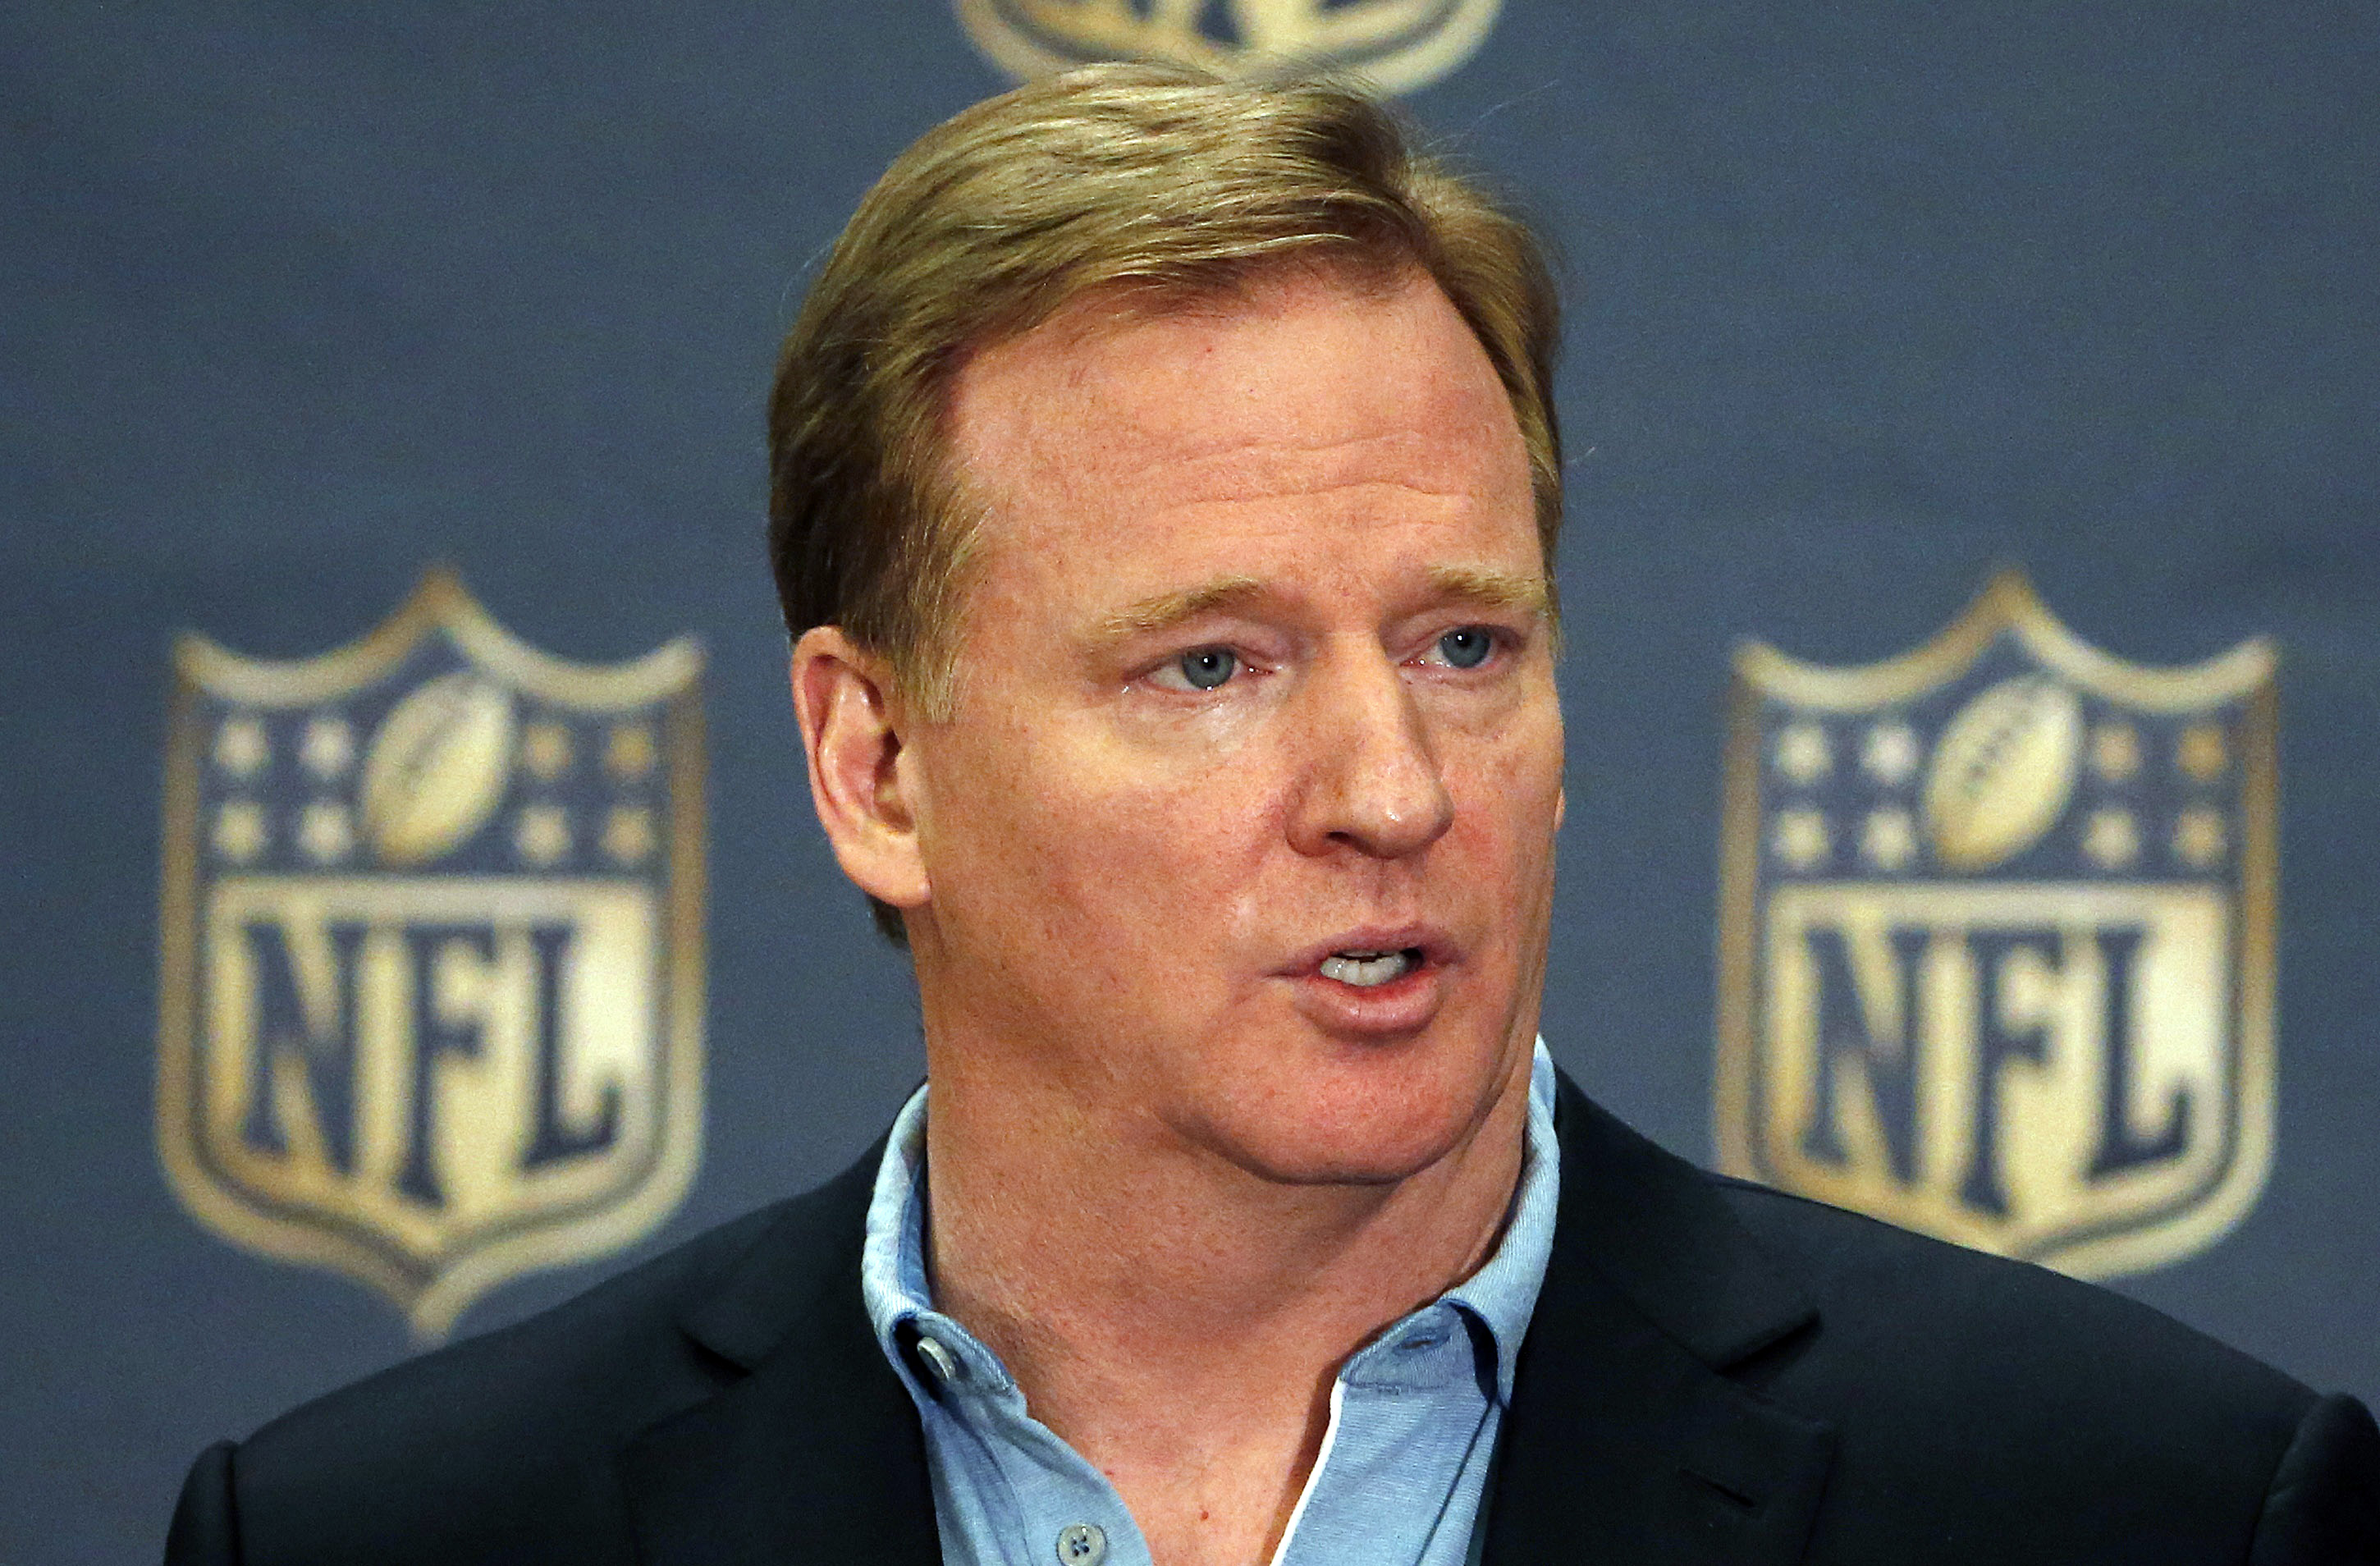 FILE - In this March 25, 2015, file photo, NFL Commissioner Roger Goodell addresses the media at a news conference at the NFL Annual Meeting in Phoenix. Goodell says the two stadium projects in the Los Angeles area look promising enough to lead to the ret